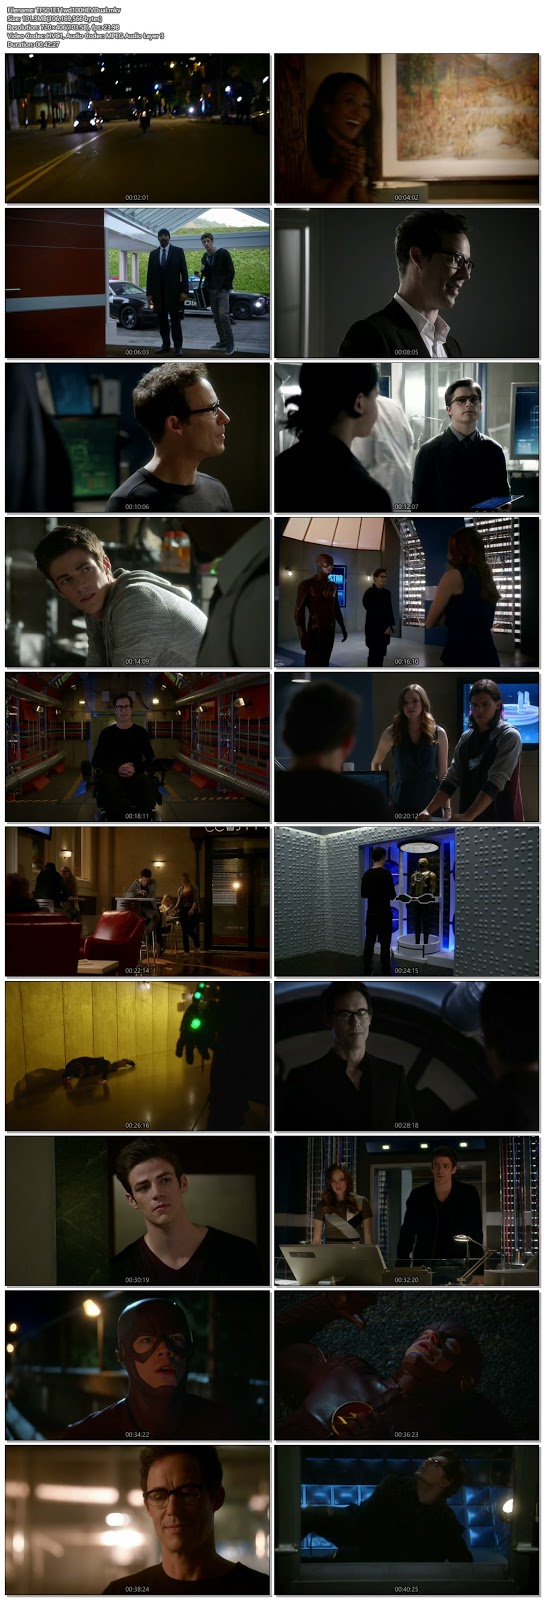 The Flash S01E11 Dual Audio BRRip 480p 100MB HEVC x265, hollwood tv series The Flash S01E11 Dual Audio 480p 720p hdtv tv show hevc x265 hdrip 250mb 270mb free download or watch online at world4ufree.vip